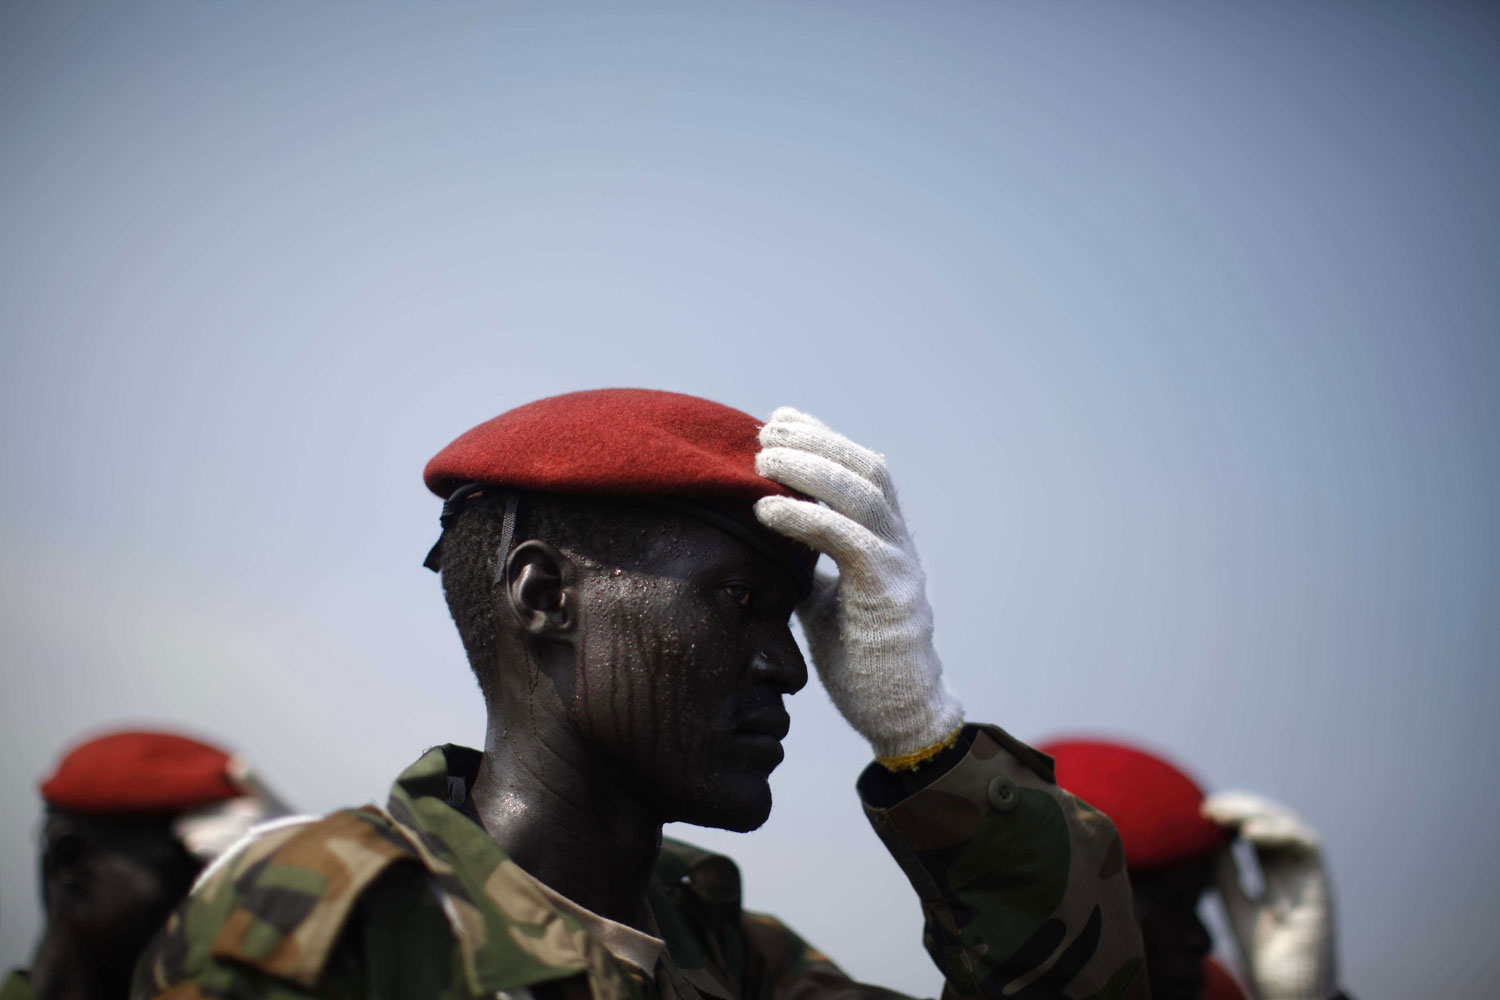 July 5, 2011. Soldiers take part in a military parade a few days ahead of the July9 independence of South Sudan. The festivities are likely to be short. The separation of Sudan into two states has ignited rounds of fighting on both sides of the new border.